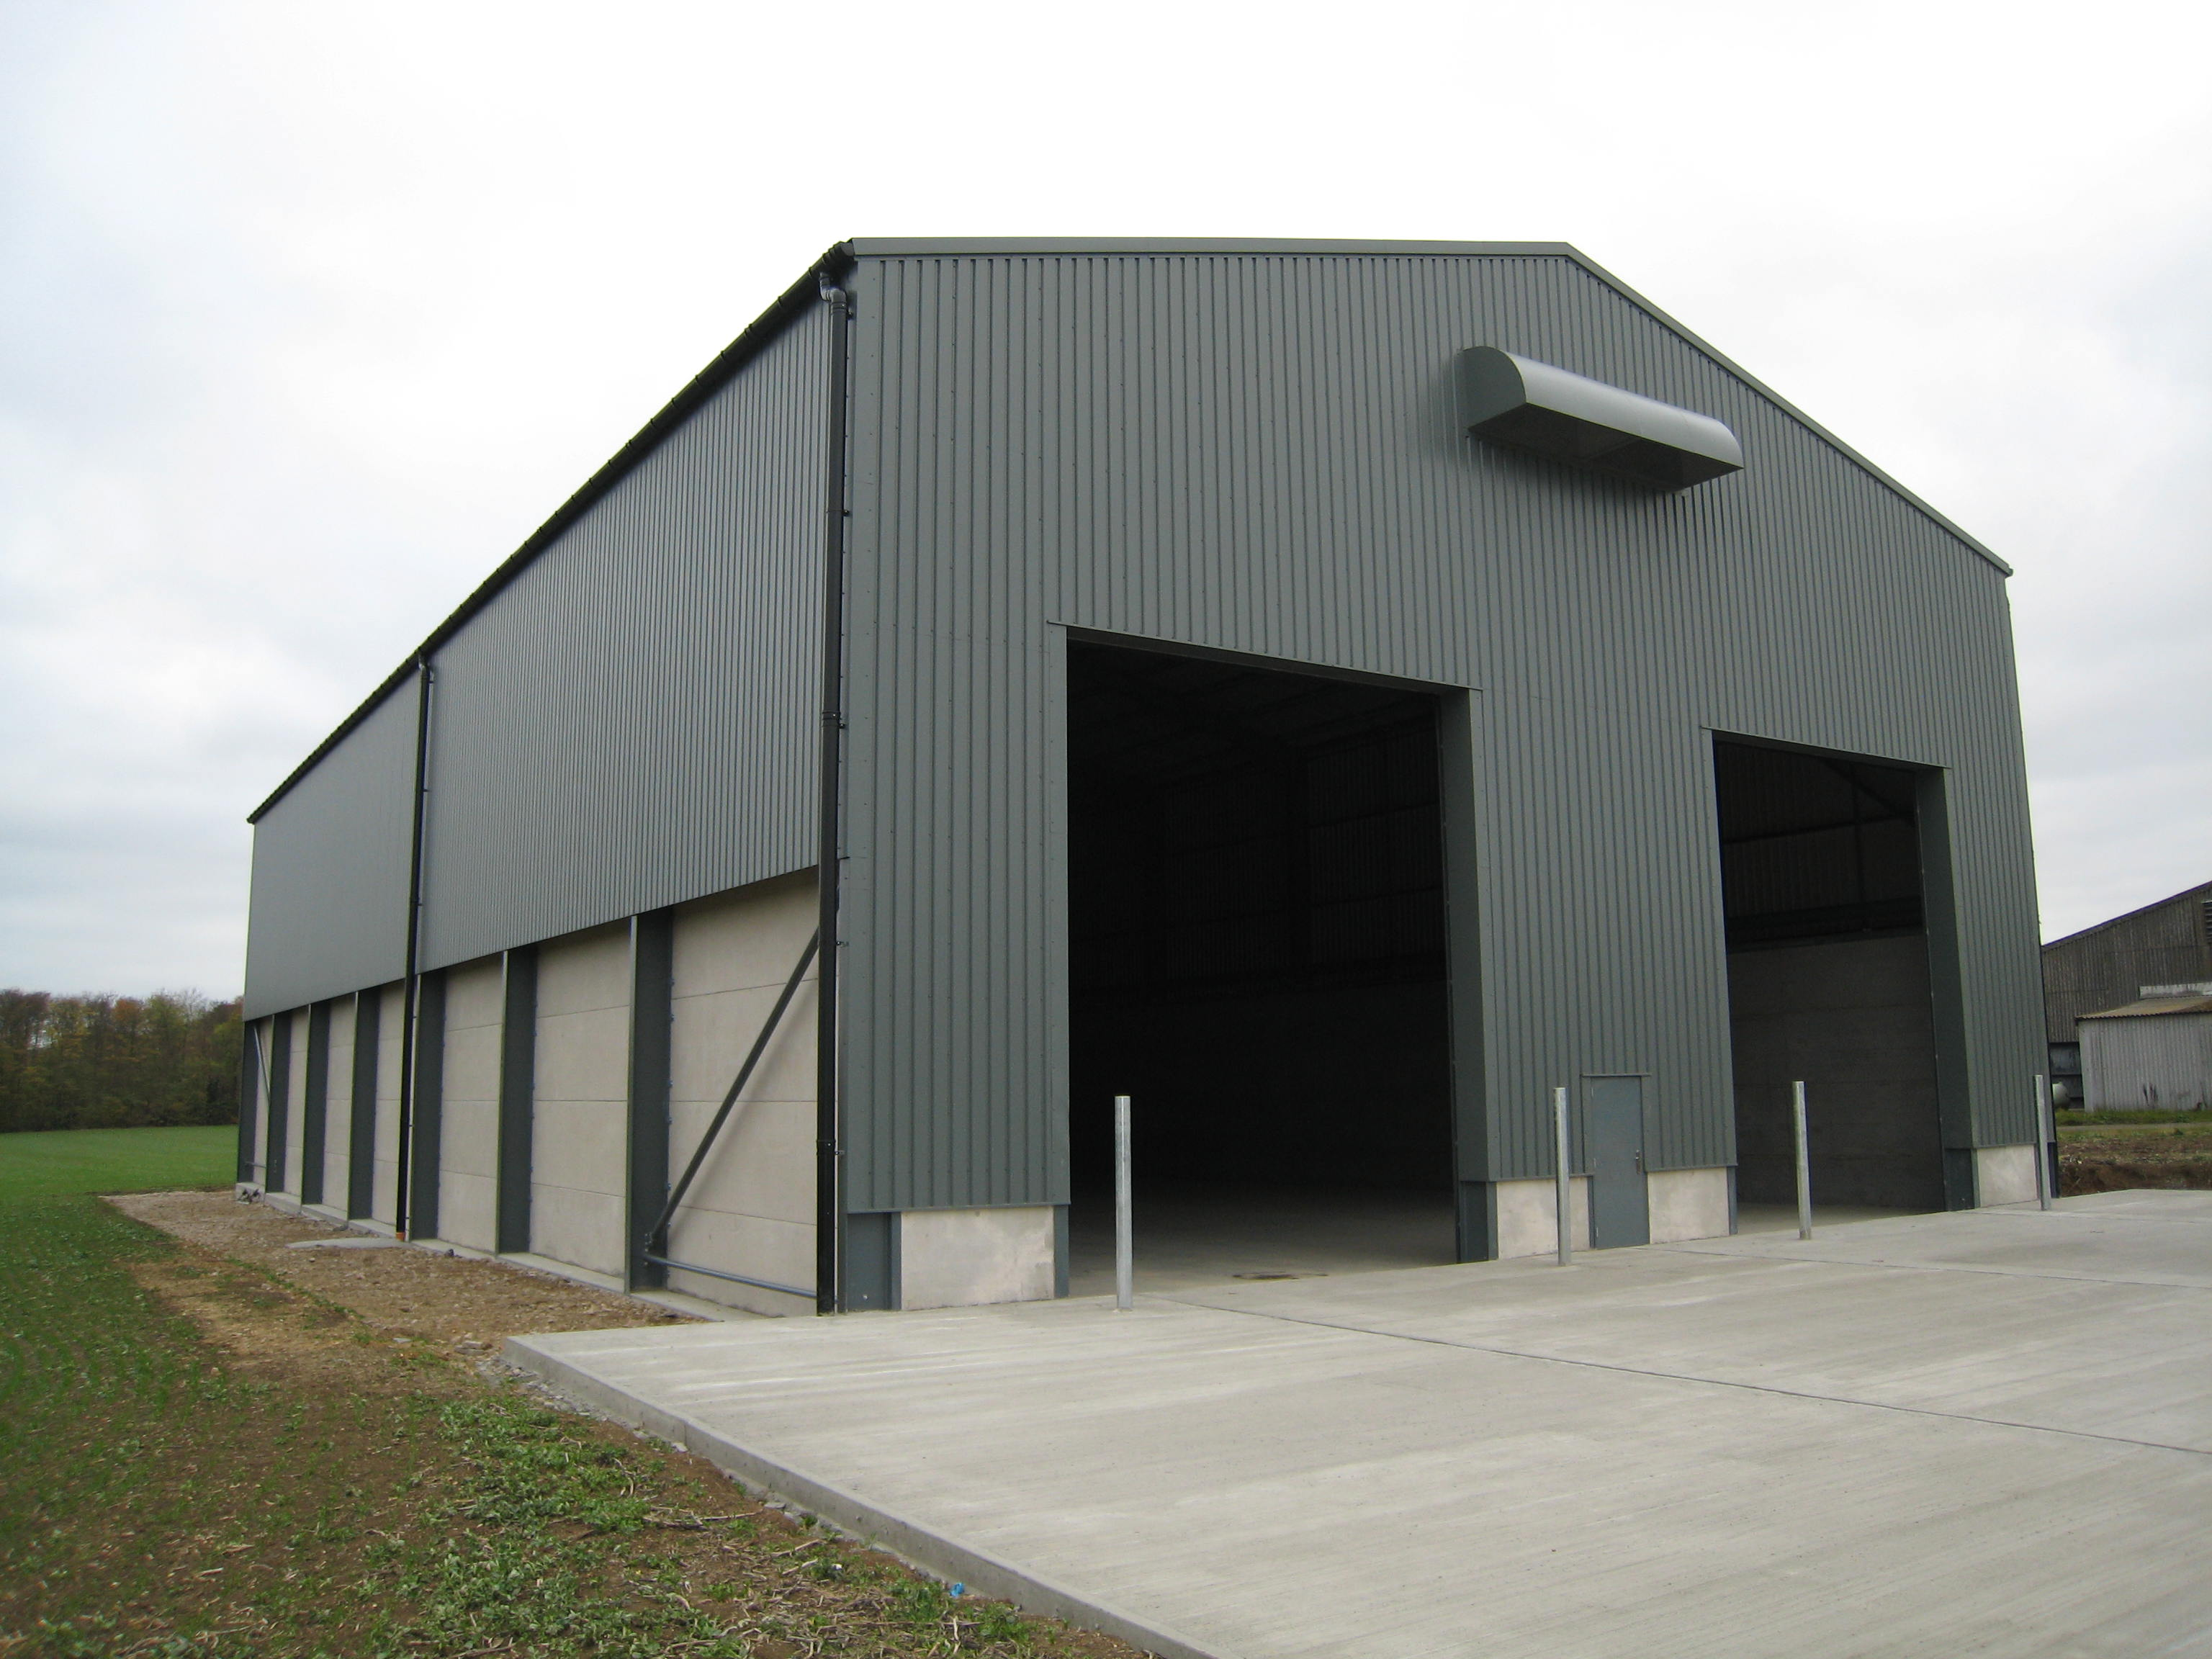 TYPICAL GRAIN STORE